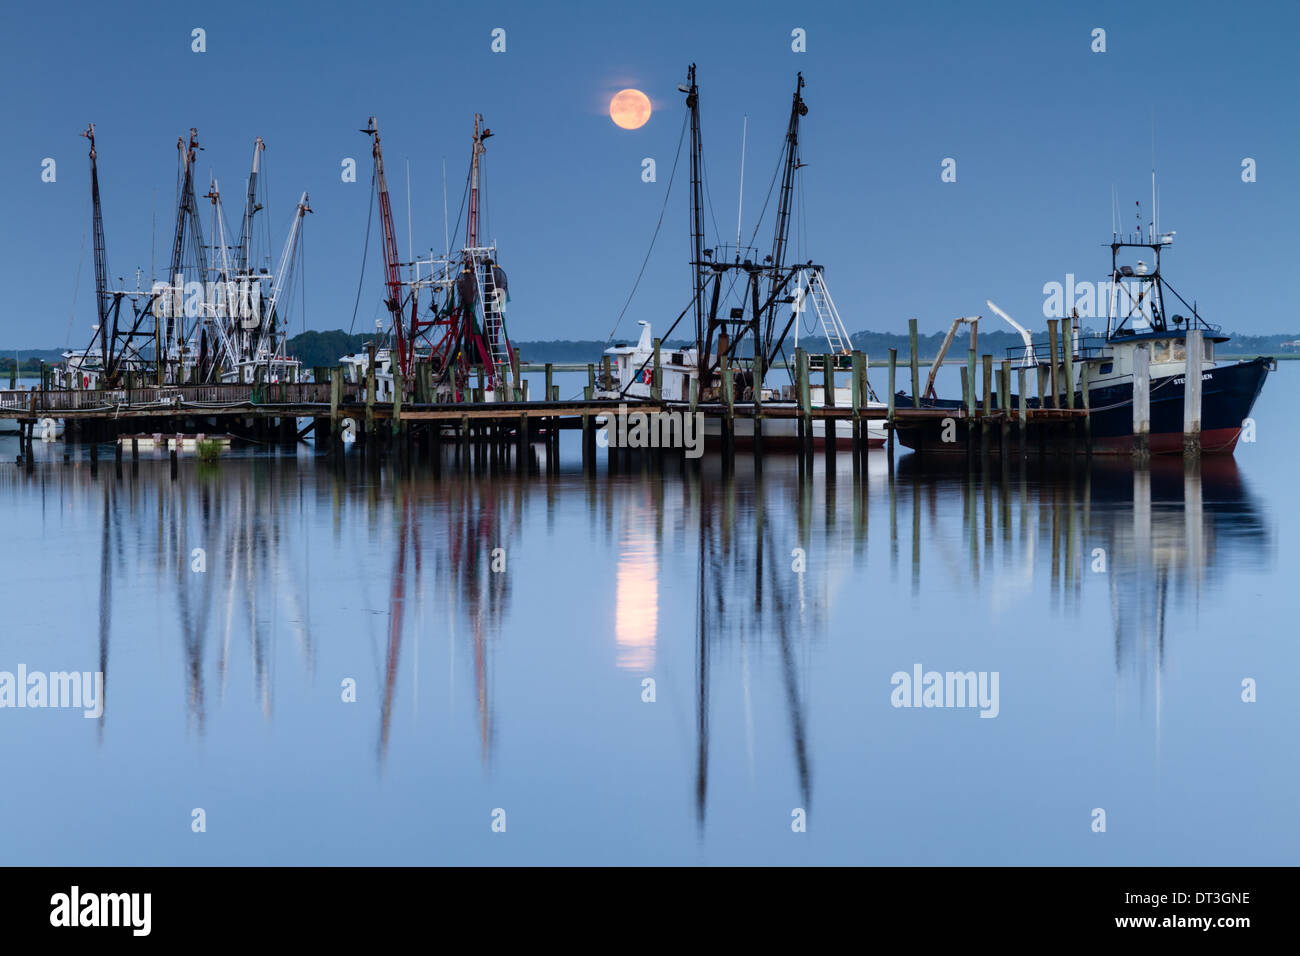 Shrimp boats at a dock with the full moon setting in the background. - Stock Image